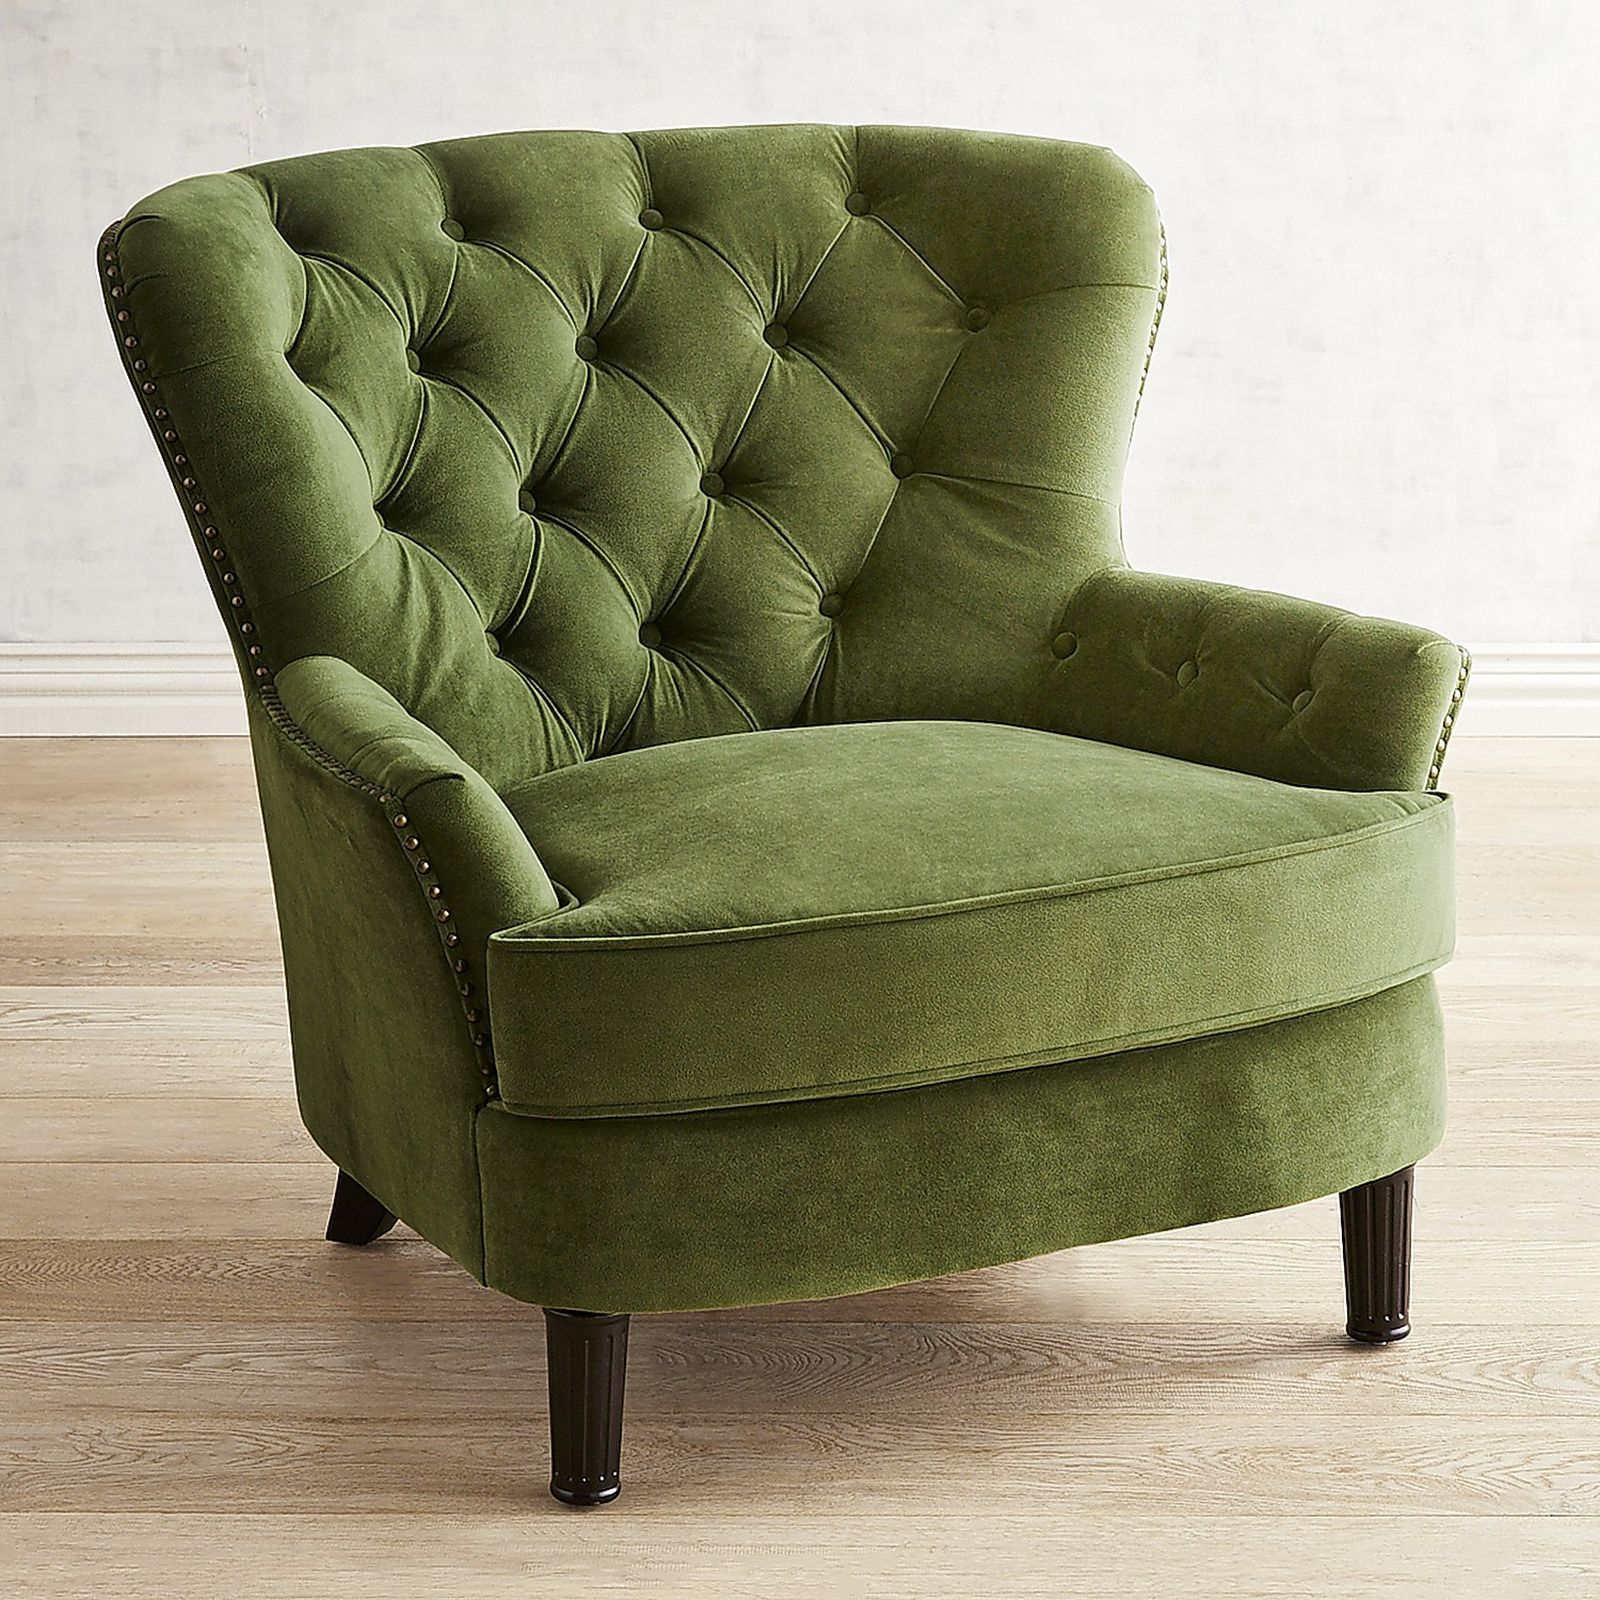 Olive Green Velvet Accent Chair Stretch Covers Ireland Eliza Forest Armchair Living Room